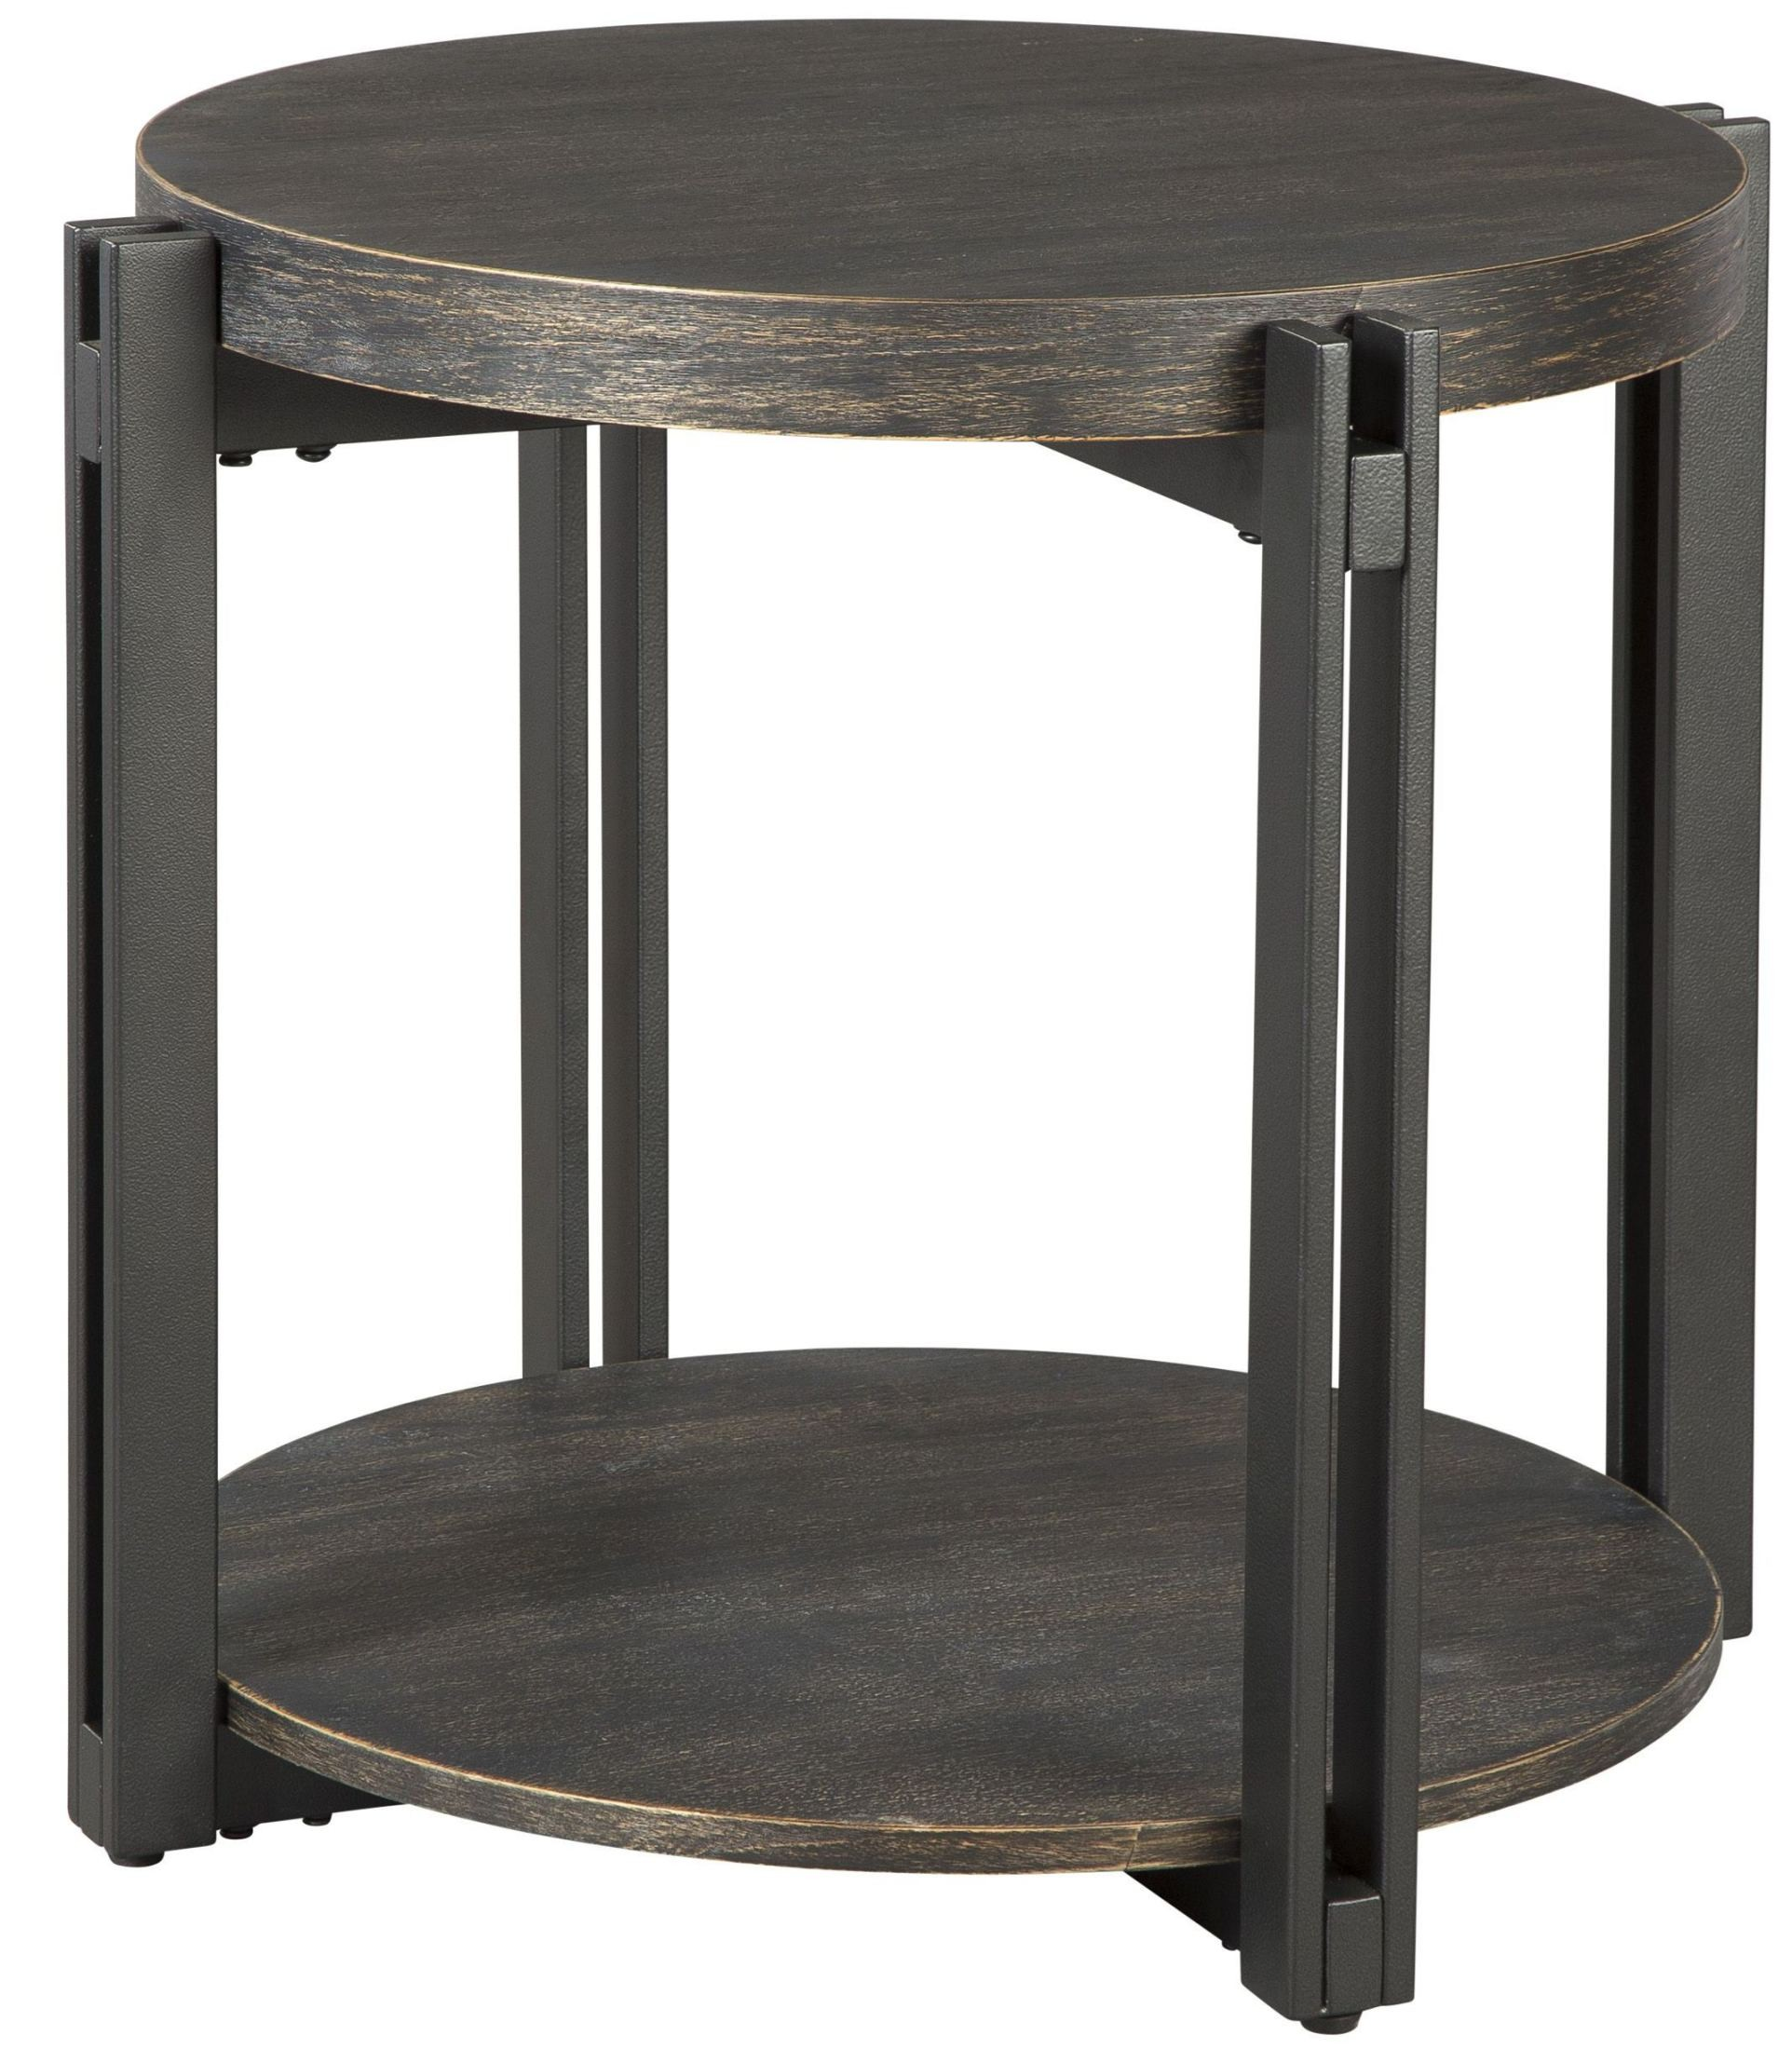 Winnieconi black round end table t857 6 ashley for Black round end table